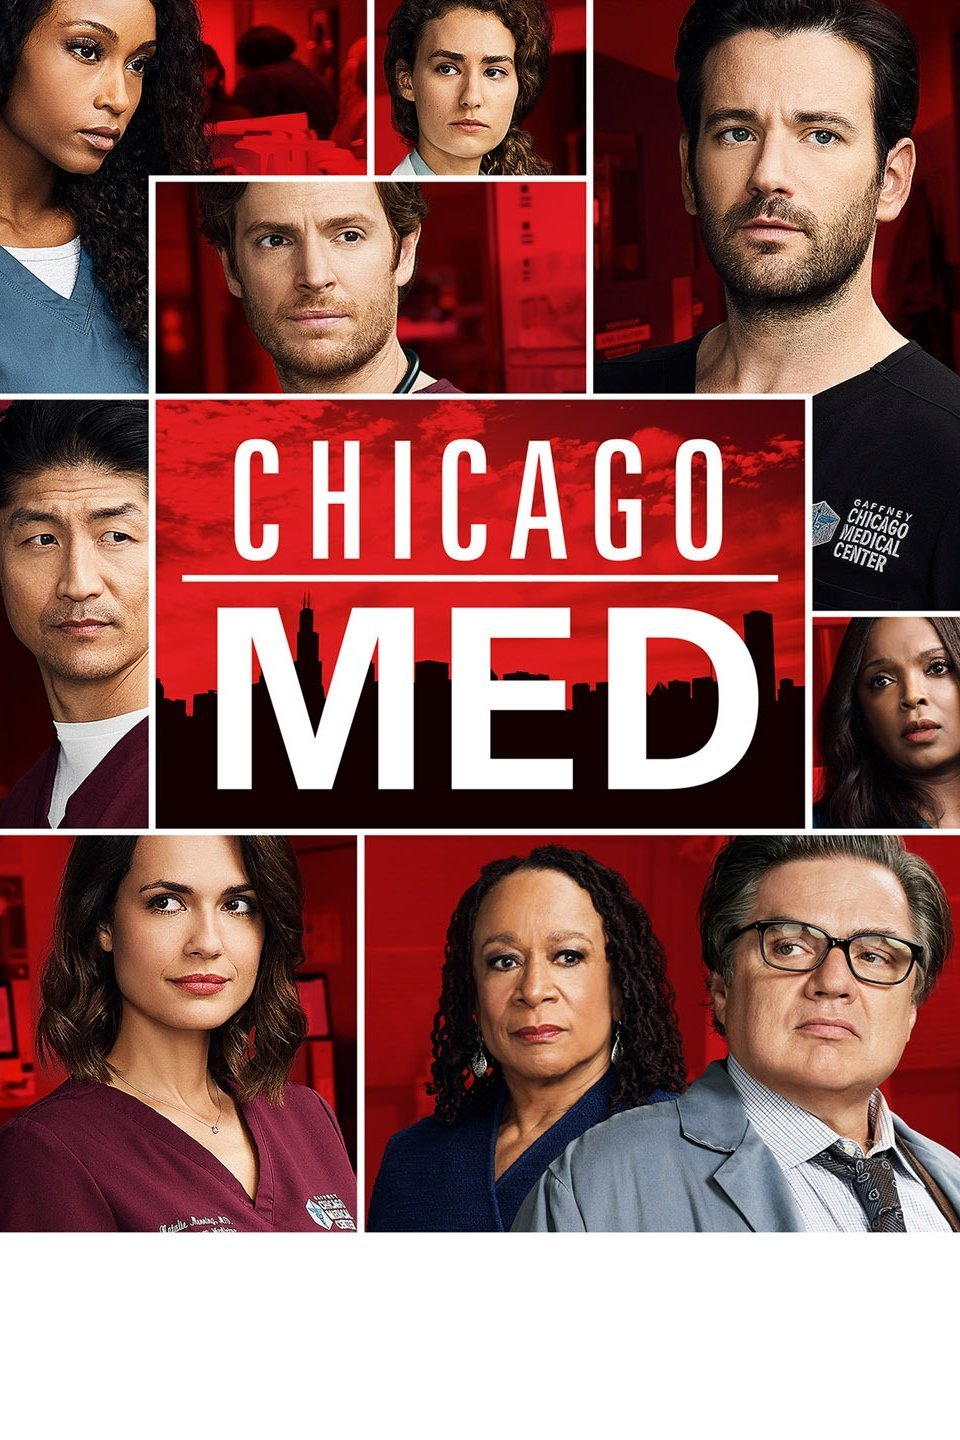 Chicago Med 2017: Season 3 - Full (1/13)